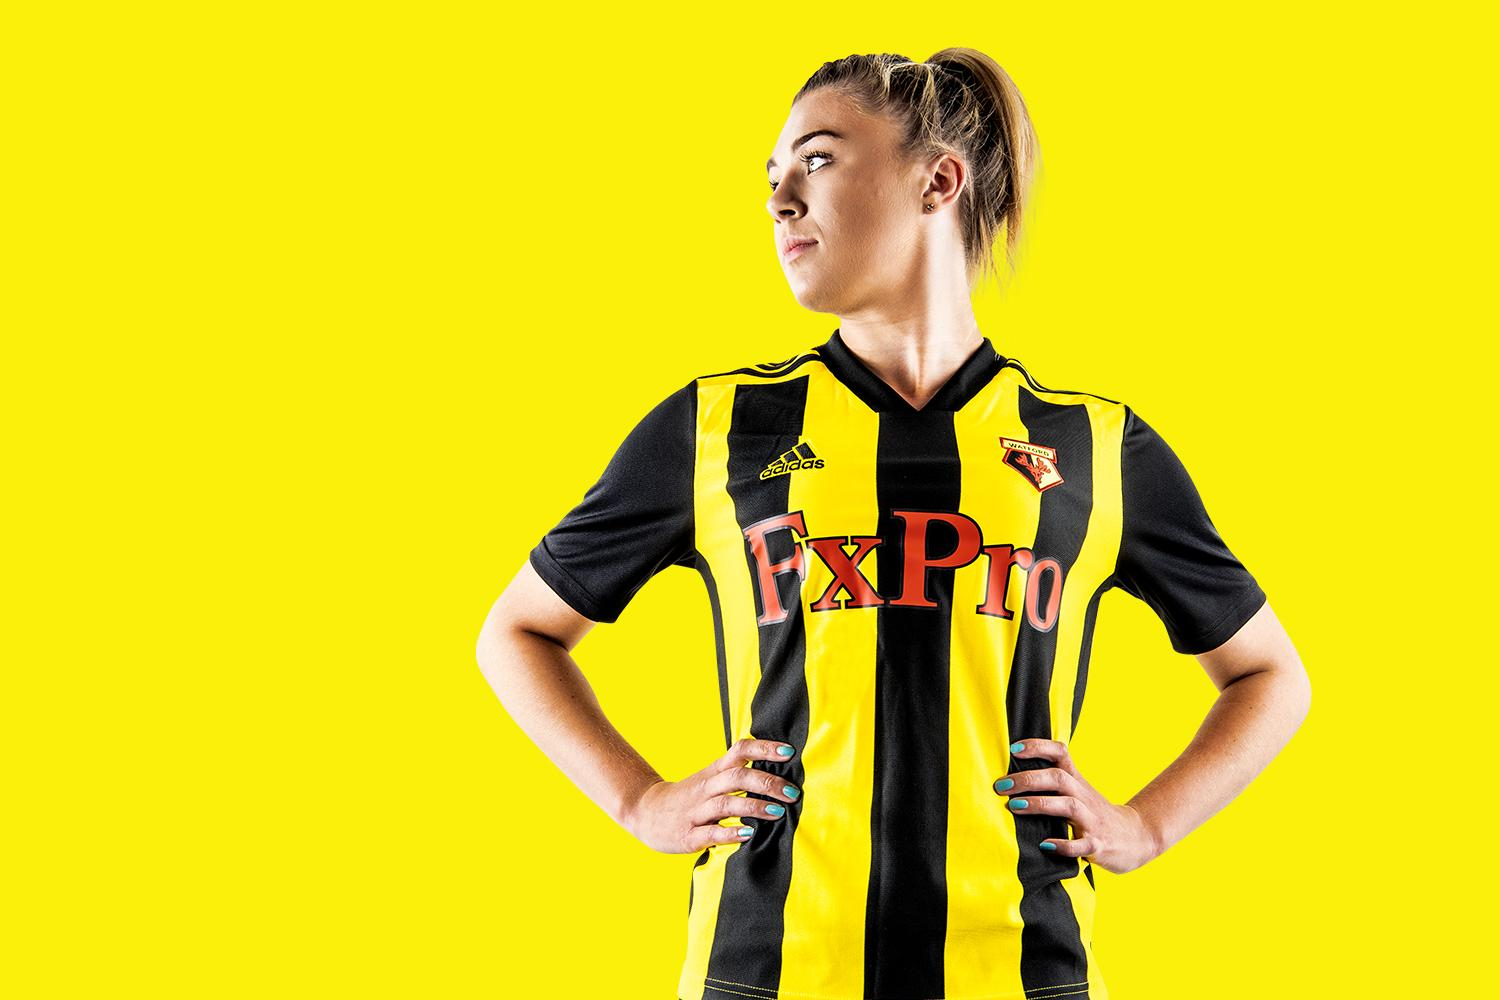 watford-18-19-home-kit-3.jpg